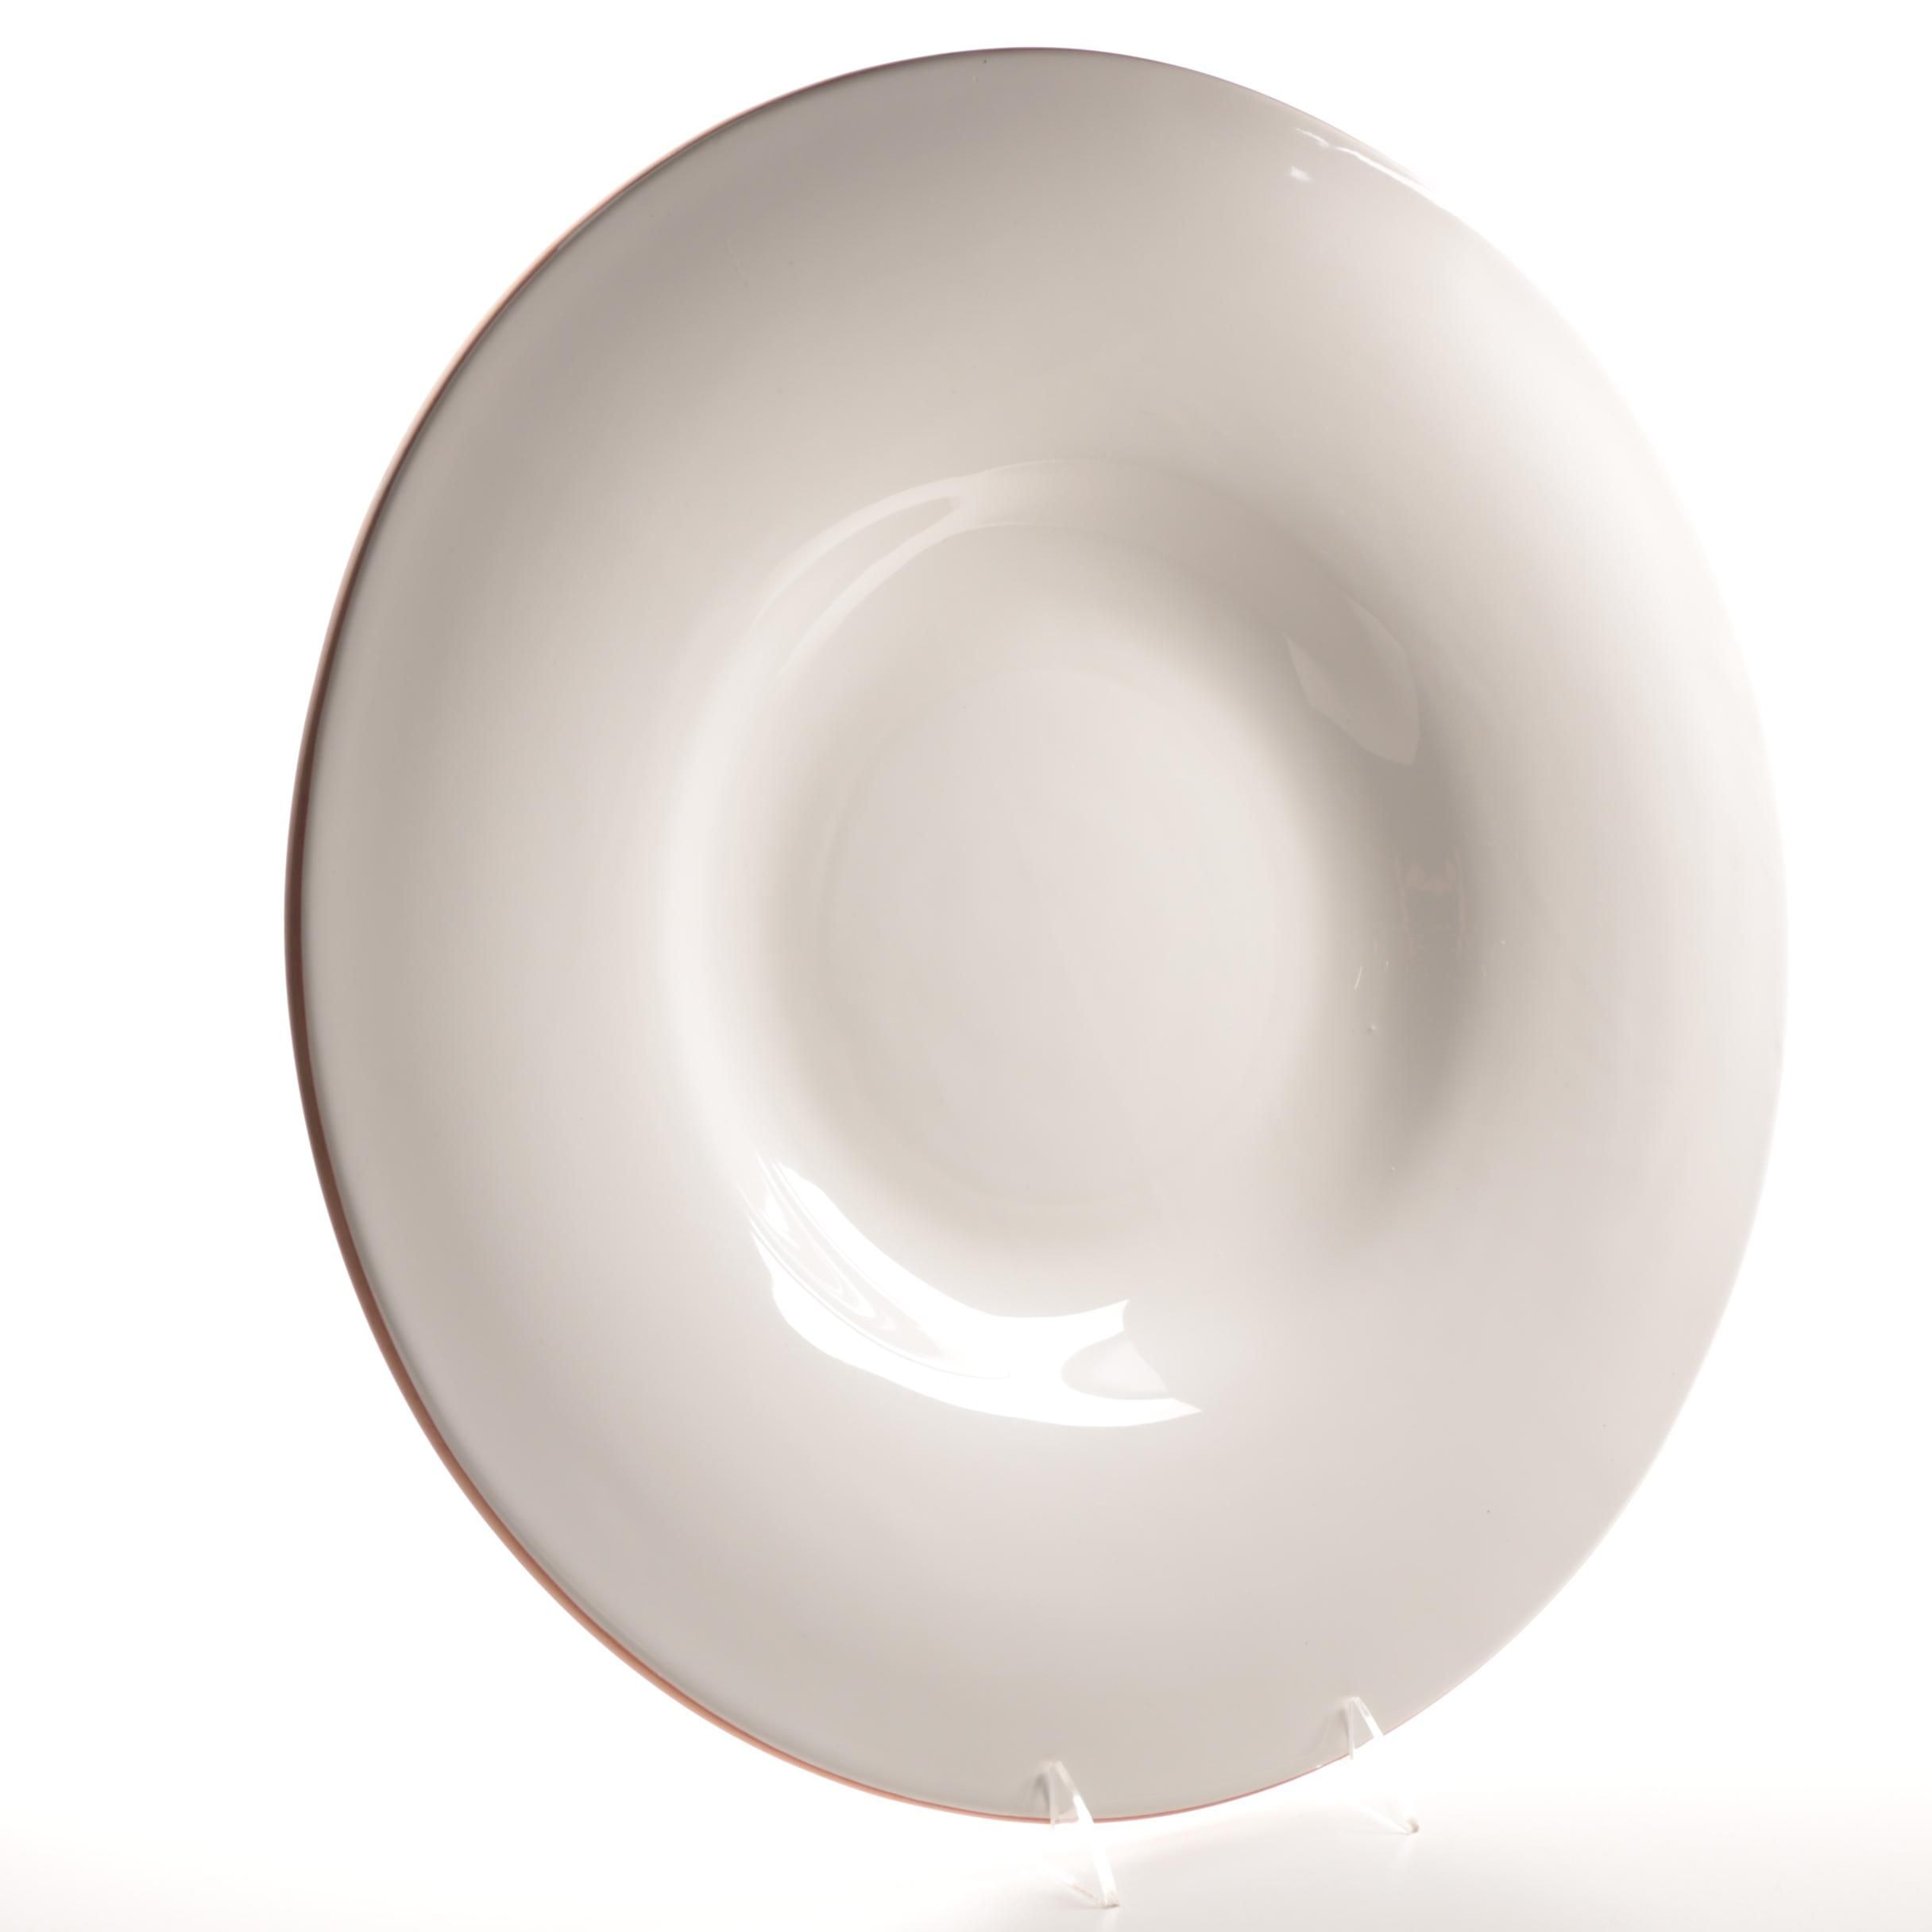 Antica Fornace Large White Pottery Serving Bowl